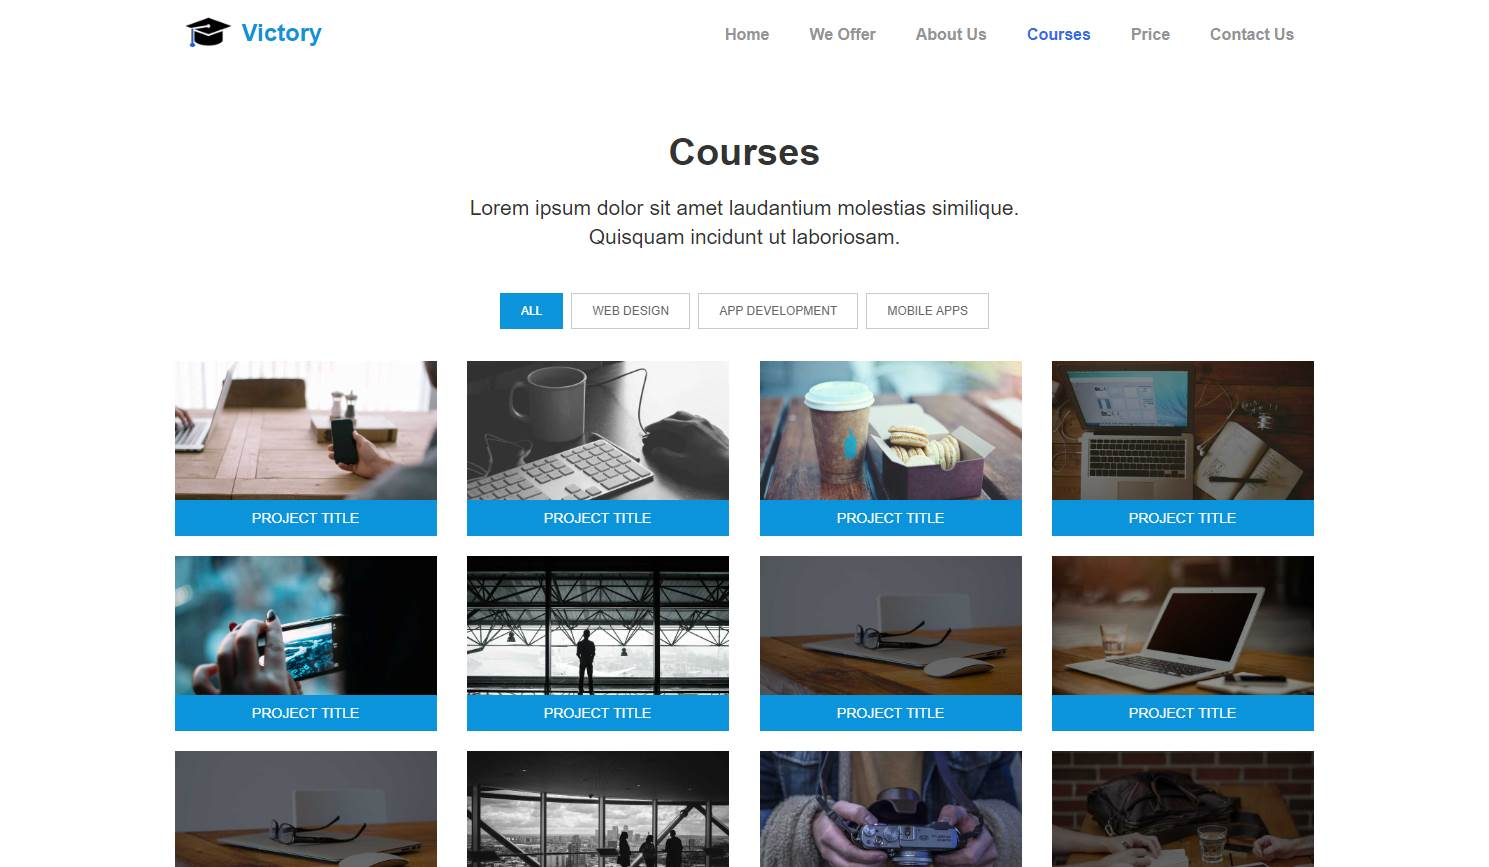 Victory: An Educational Responsive Template